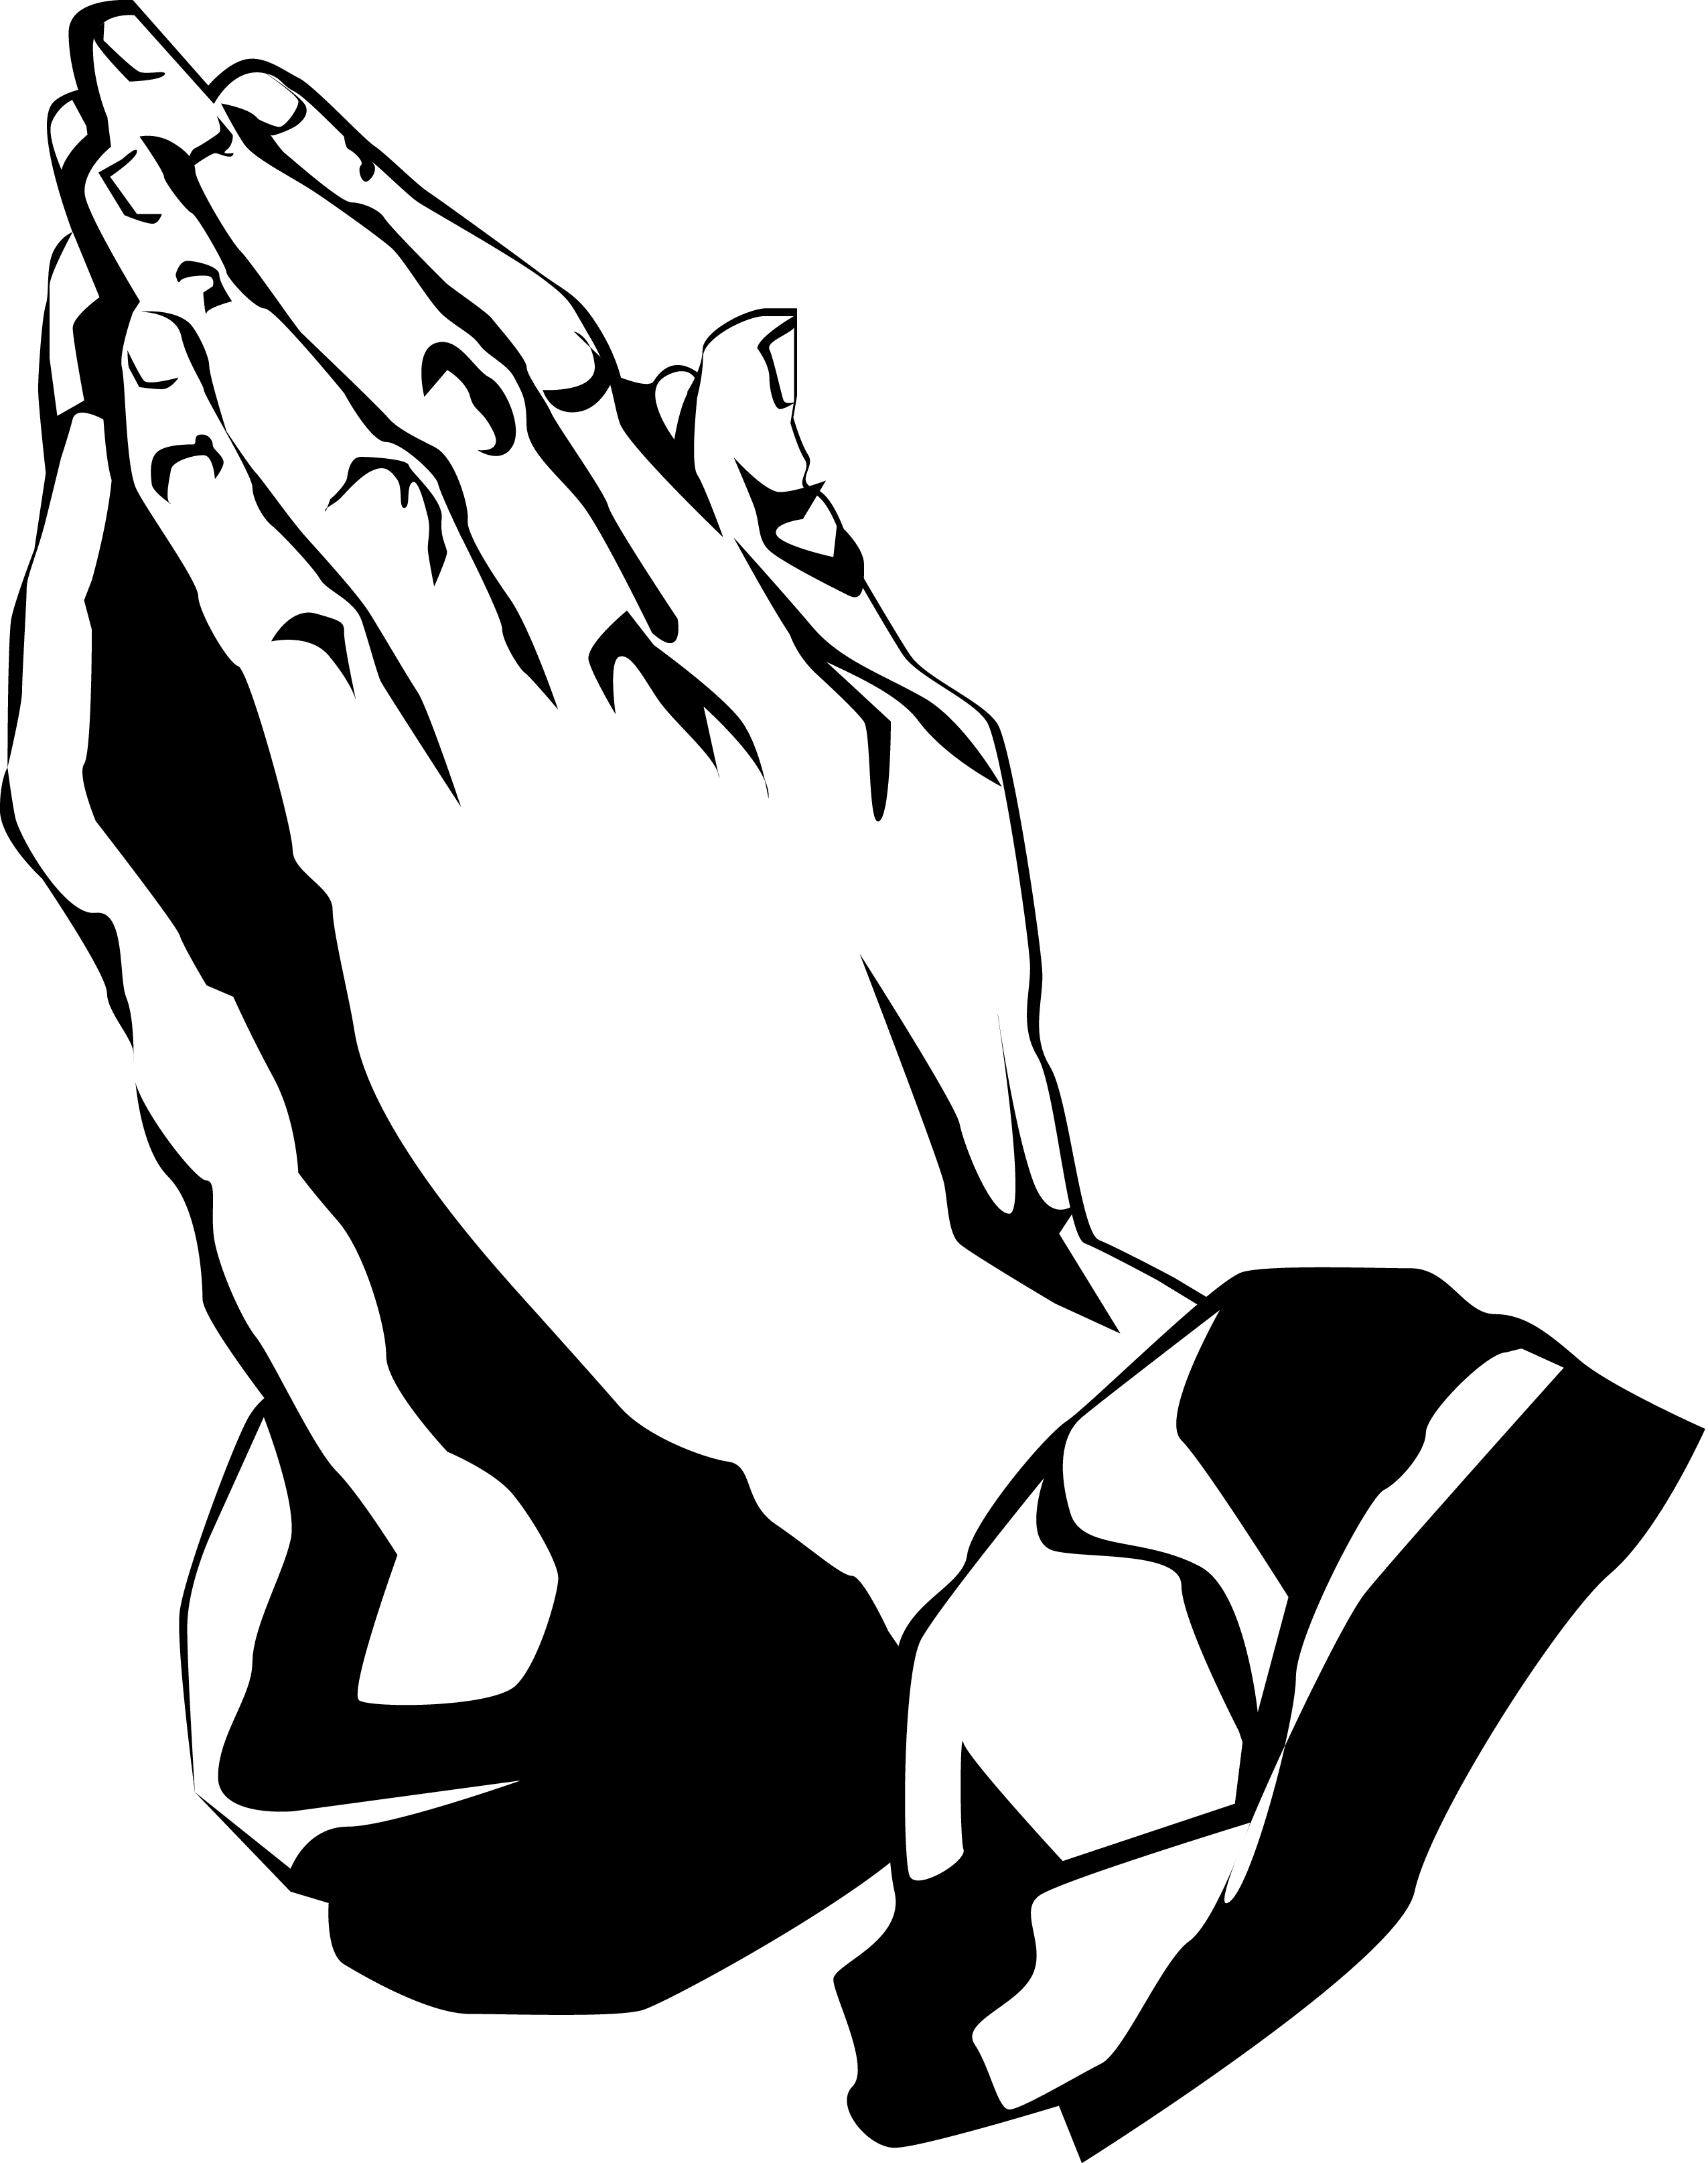 2550x3229 Woman Praying Hands Clipart